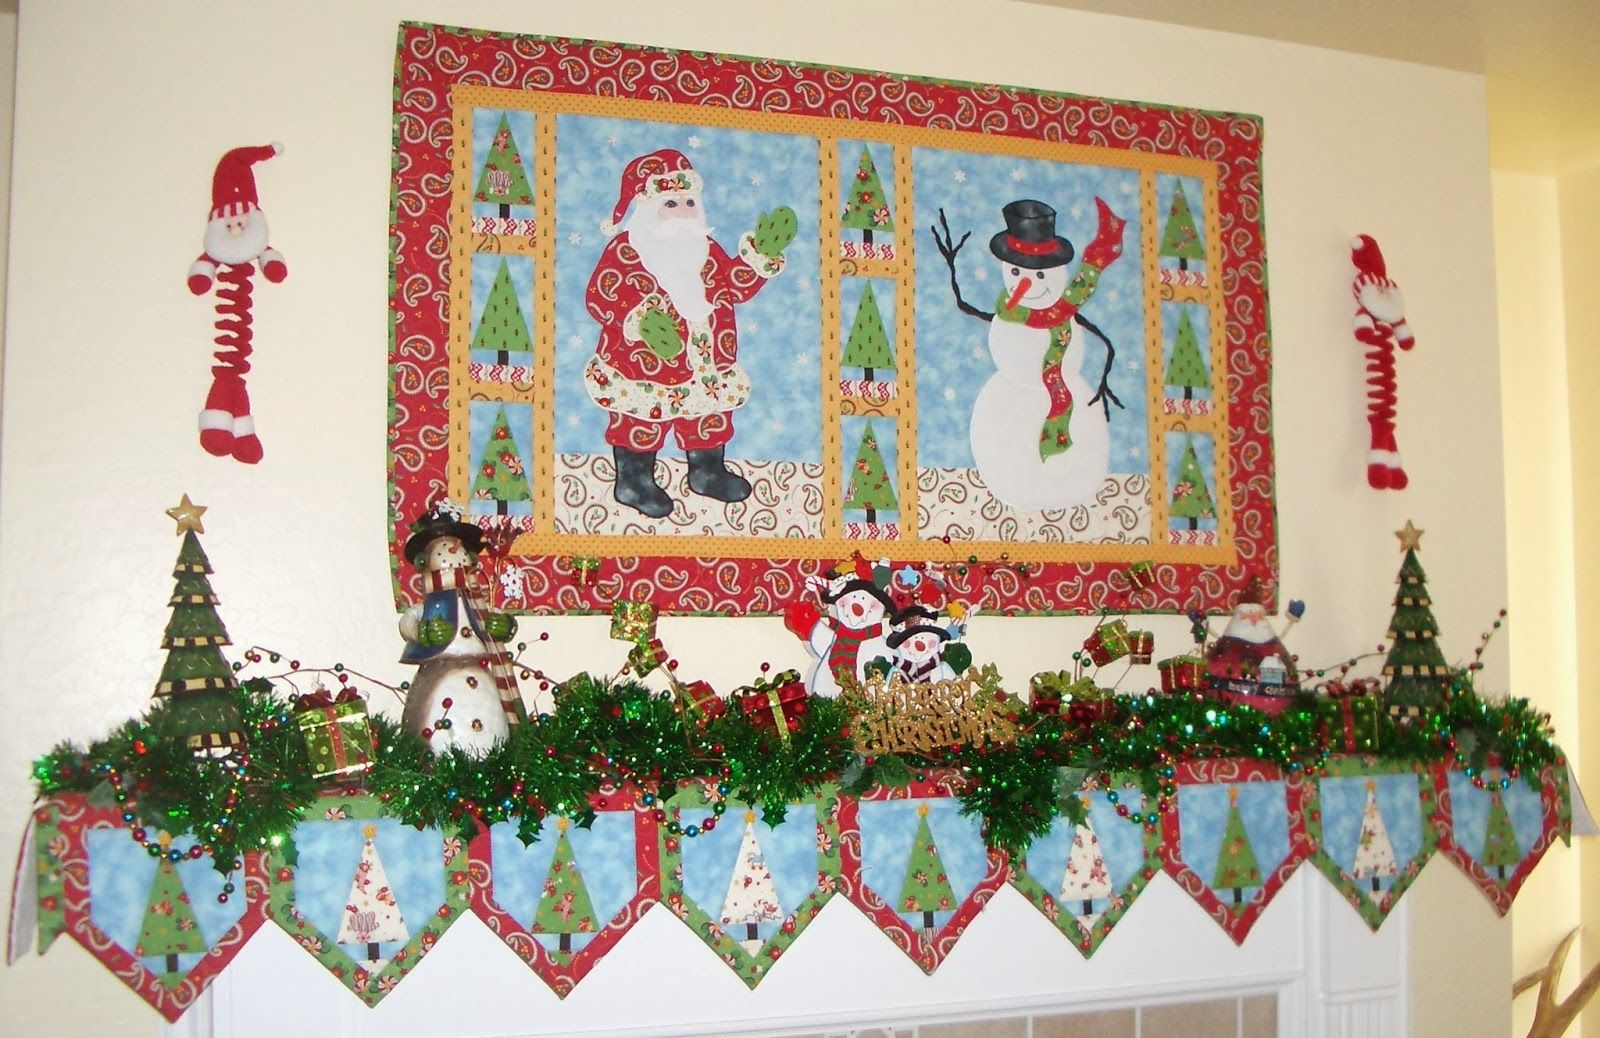 How To Make A Fireplace Mantel Scarf Or Runner For Christmas Vintage Story Cushion Shabby Patchwork 60x60cm 2 Description From Viewdesigntk I Searched This On Bingcom Images